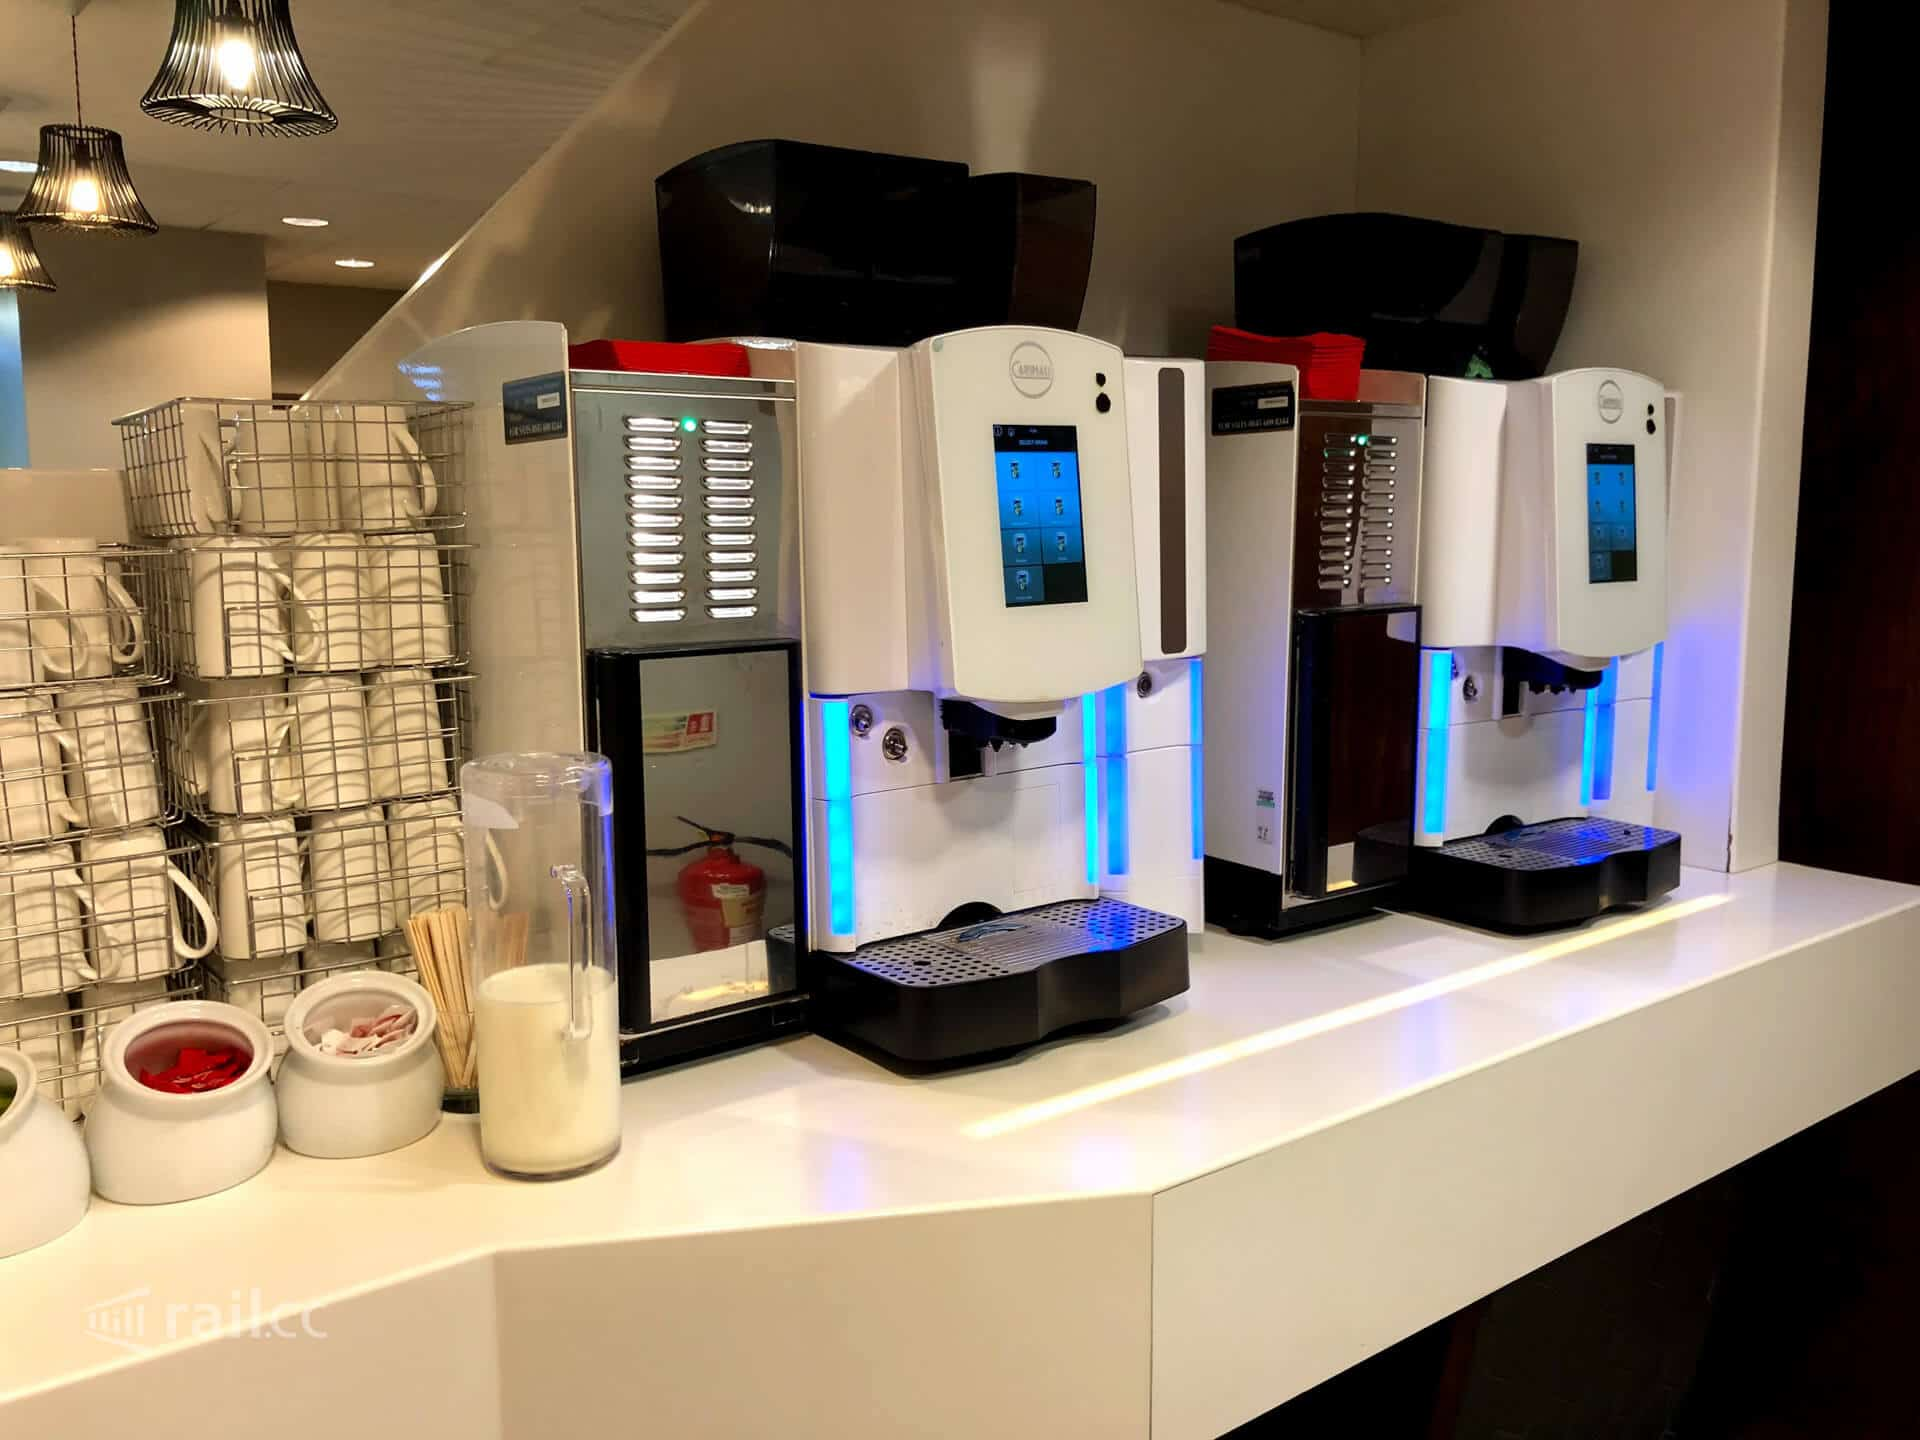 Grab a Latte, Capuccino, Hot Chocolate or Americano from one of the coffee machines found in the lounge